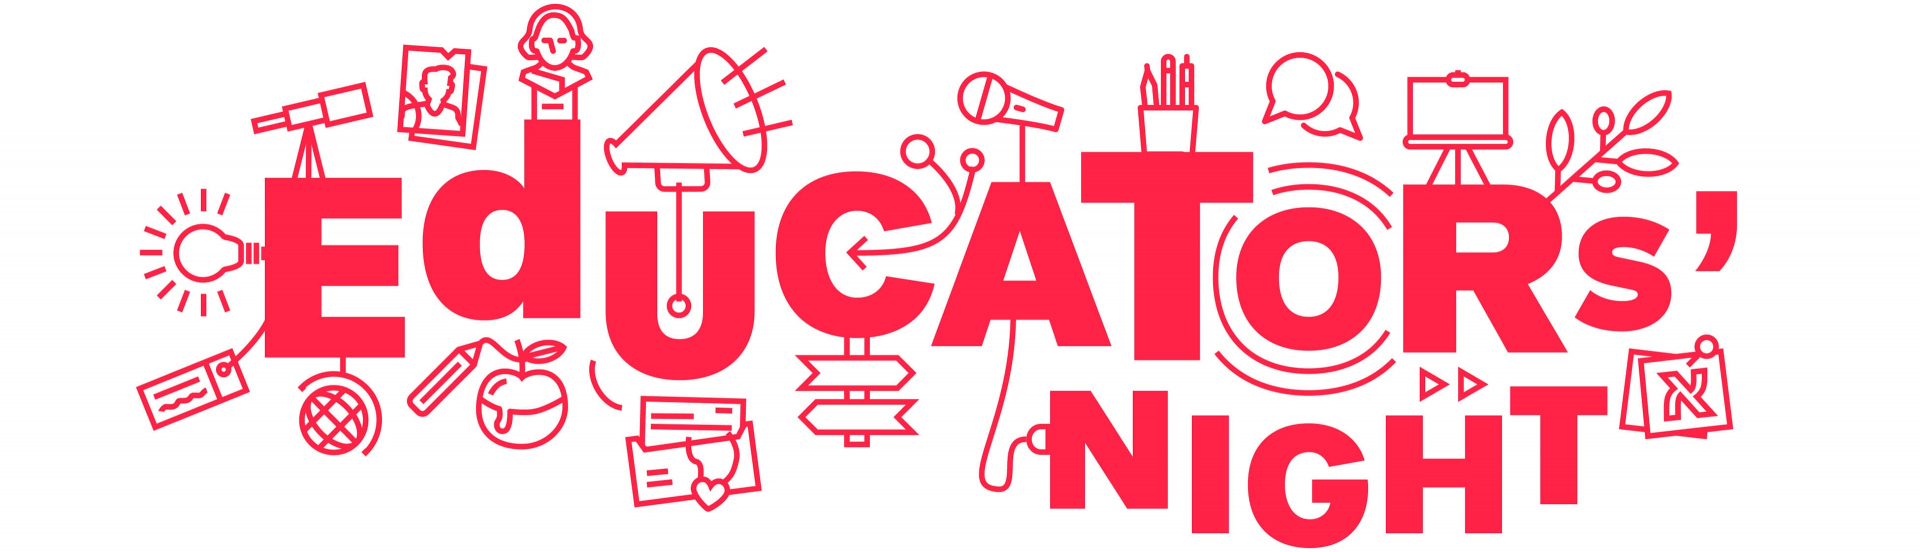 Logo Educators' Night